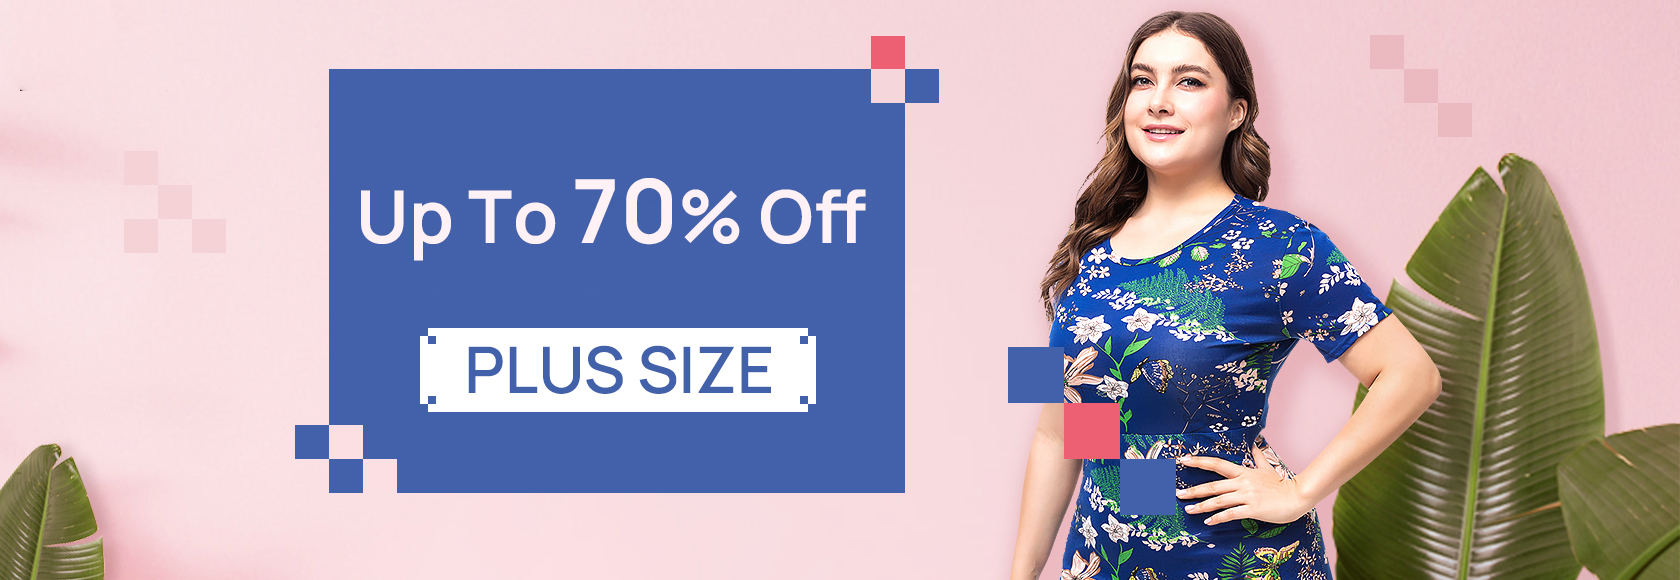 Jollychic discount coupon code: JLC478 | upto 70% Off on all items